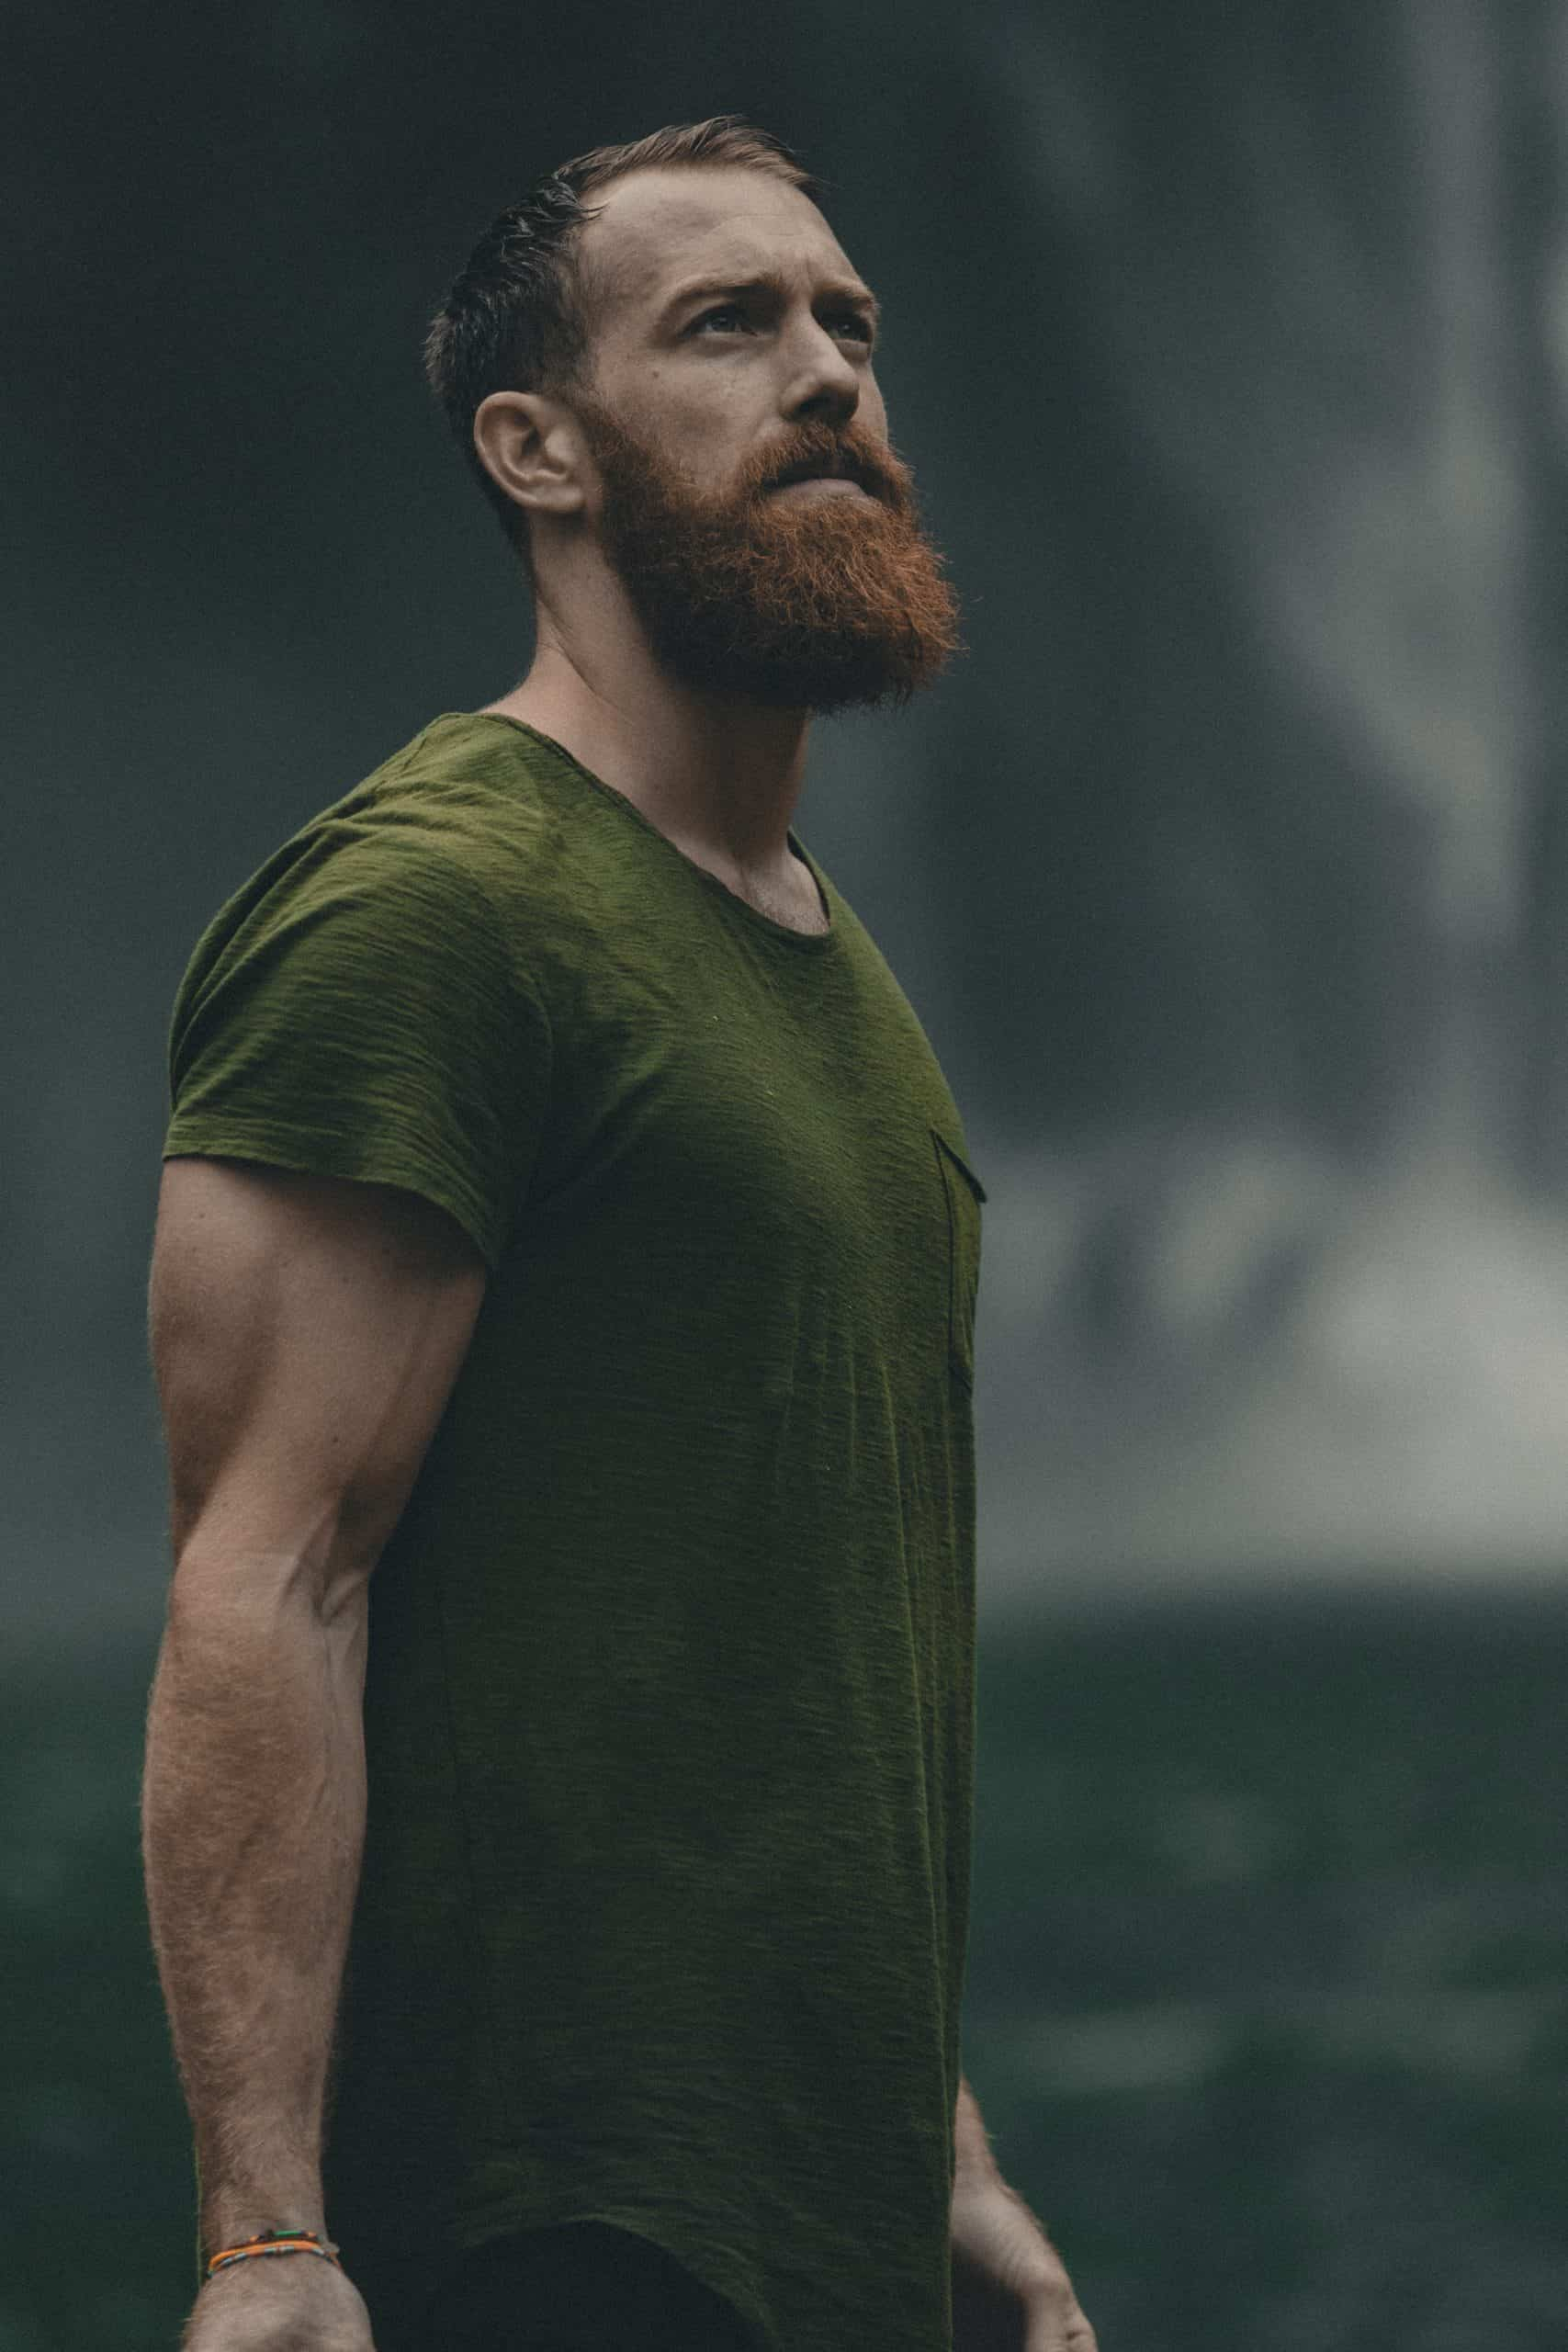 10 Coolest Haircut With Beard Styles For Men